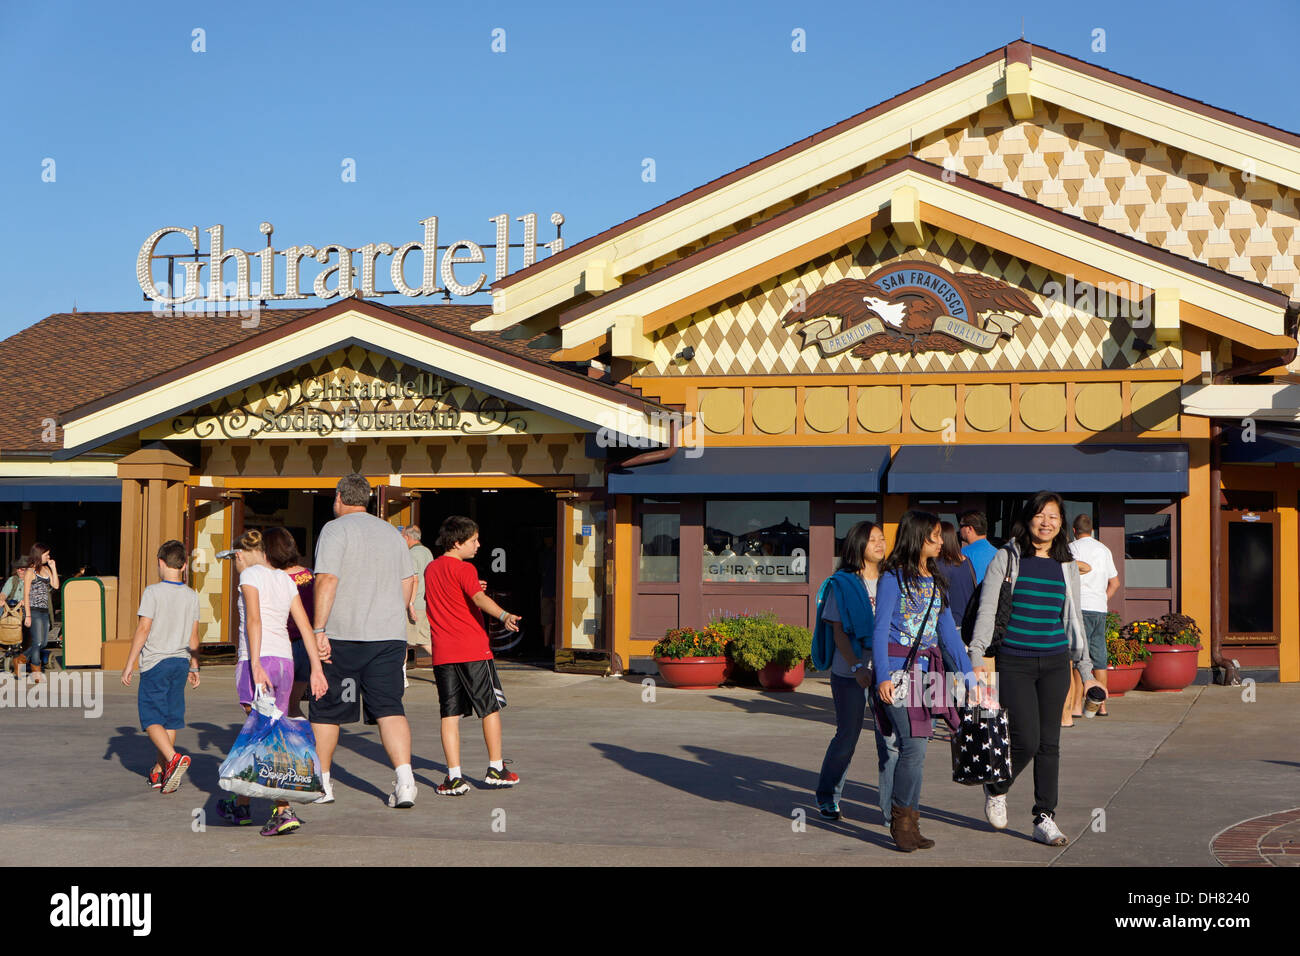 Ghirardelli Ice Cream and Chocolate Shop at Downtown Disney Marketplace, Disney World Resort, Orlando Florida - Stock Image